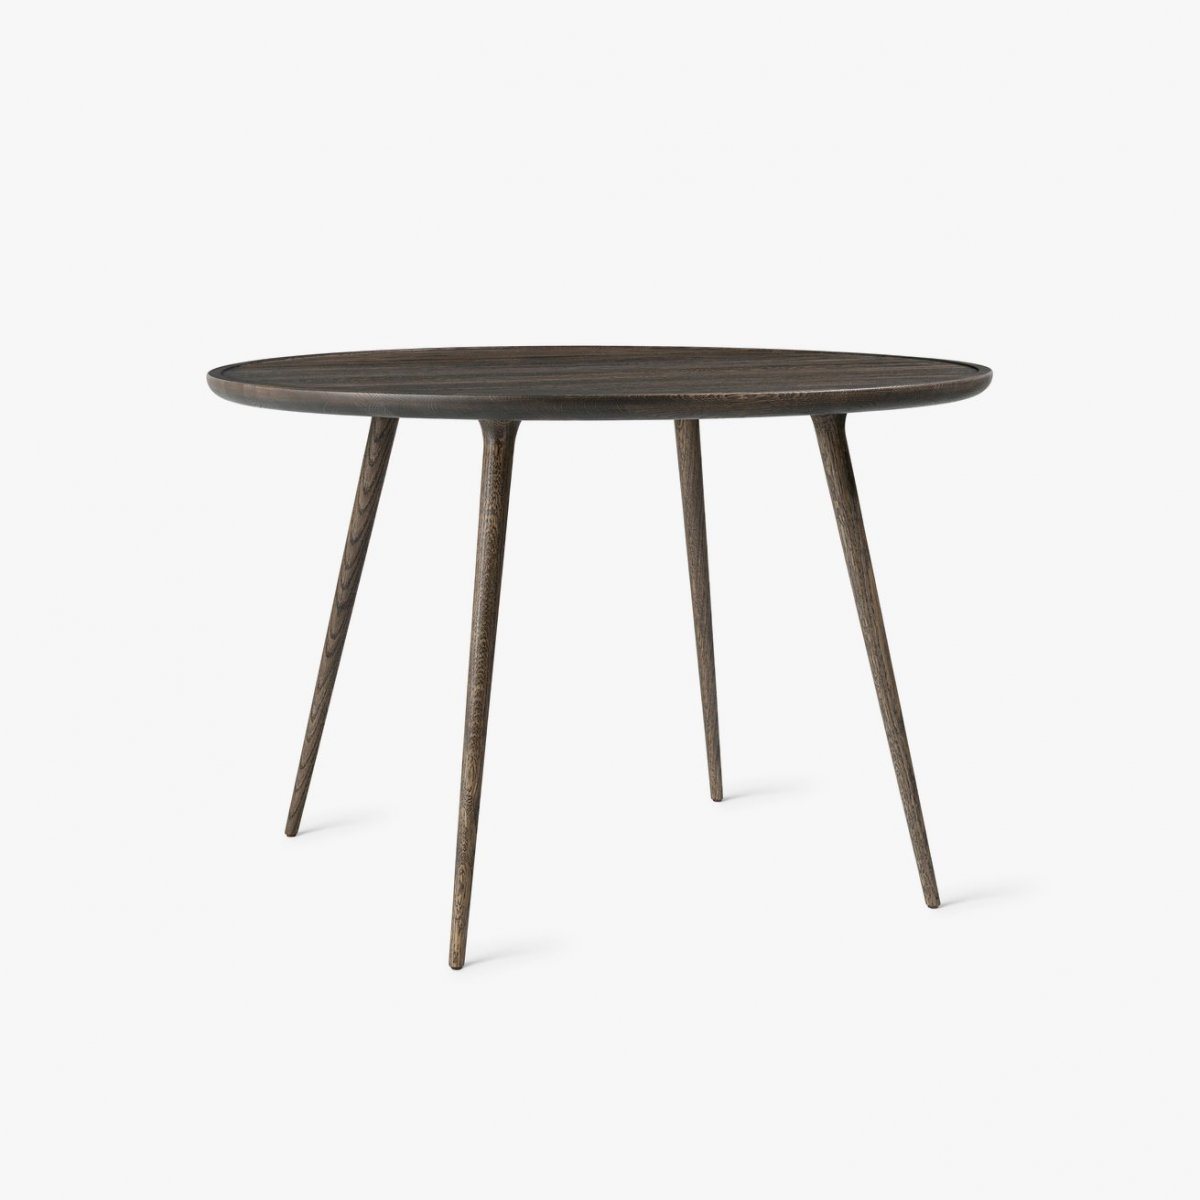 Accent Dining Table, Ø 110, Sirka grey stain.